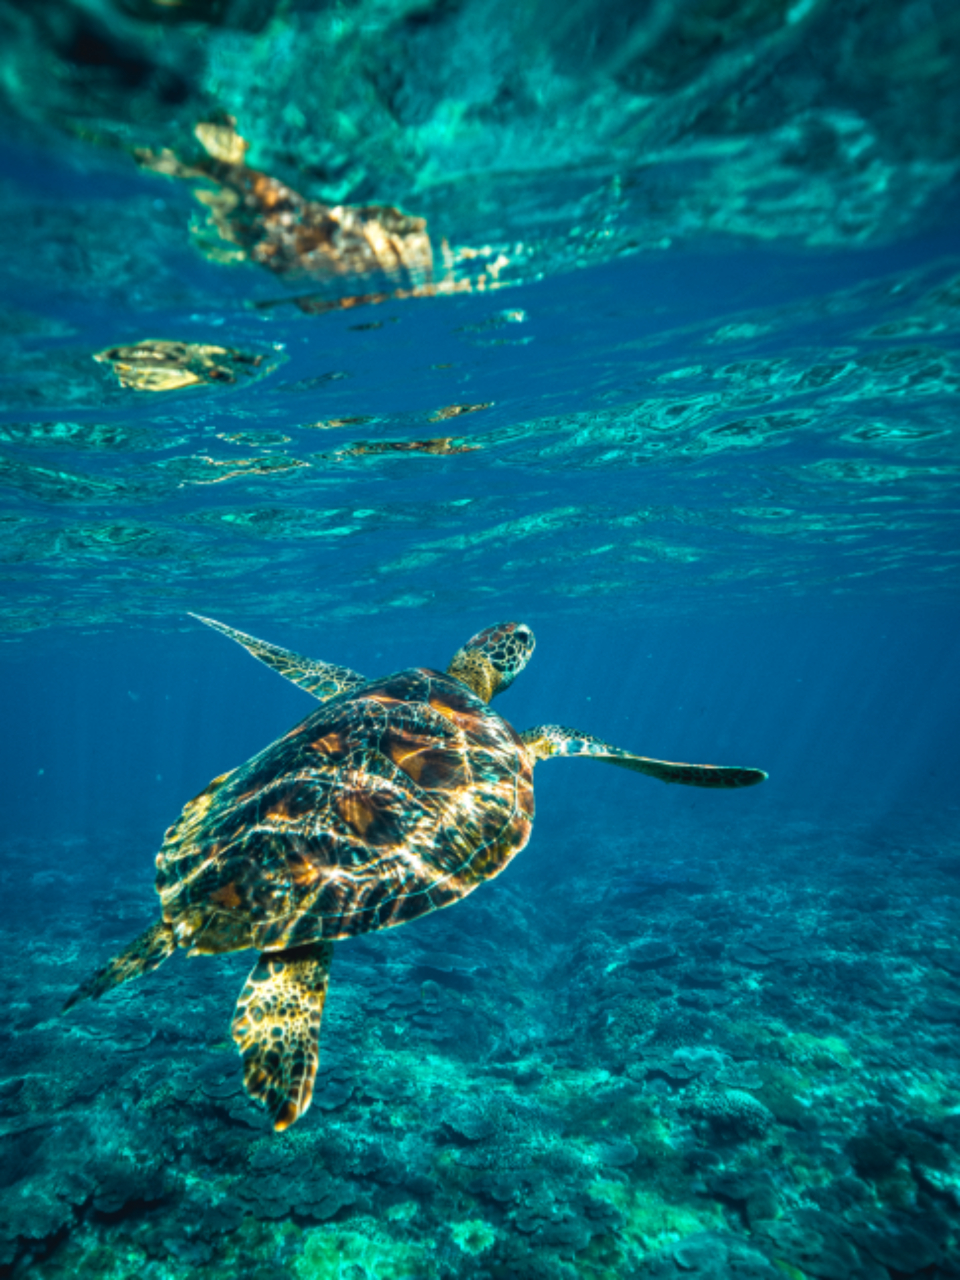 diving snorkel ocean fish sea water deep water underwater turtle sea turtle green blue water